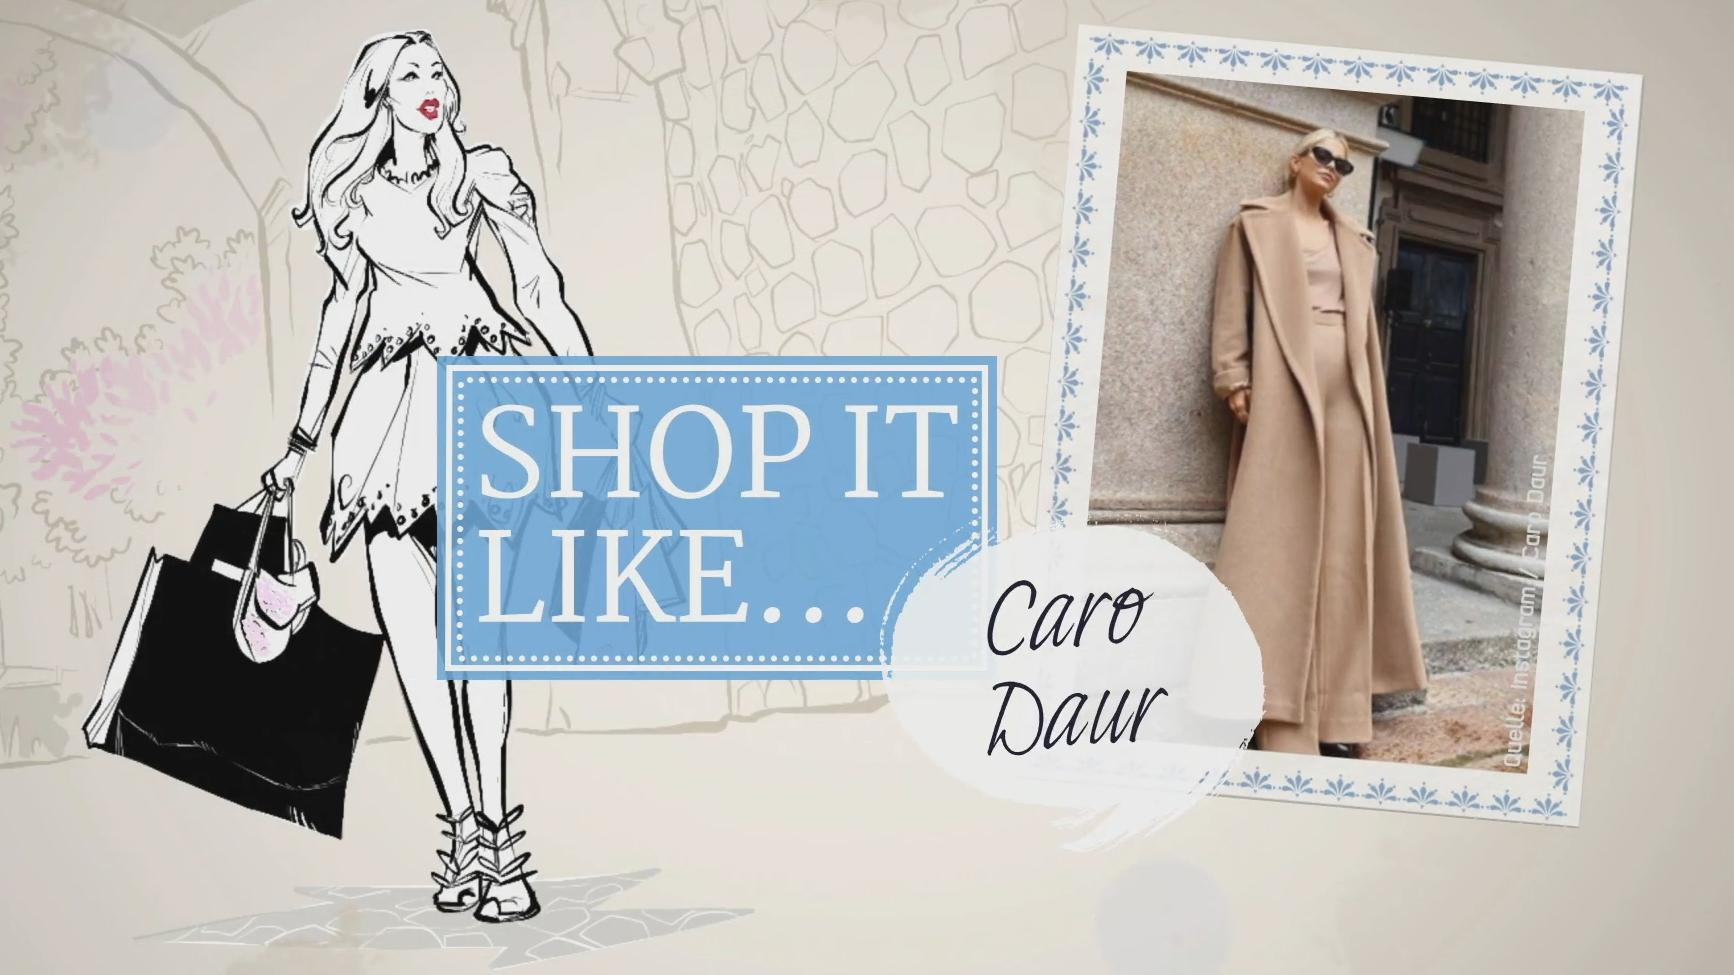 Shop it like: So geht Caro Daurs Mantel-Style